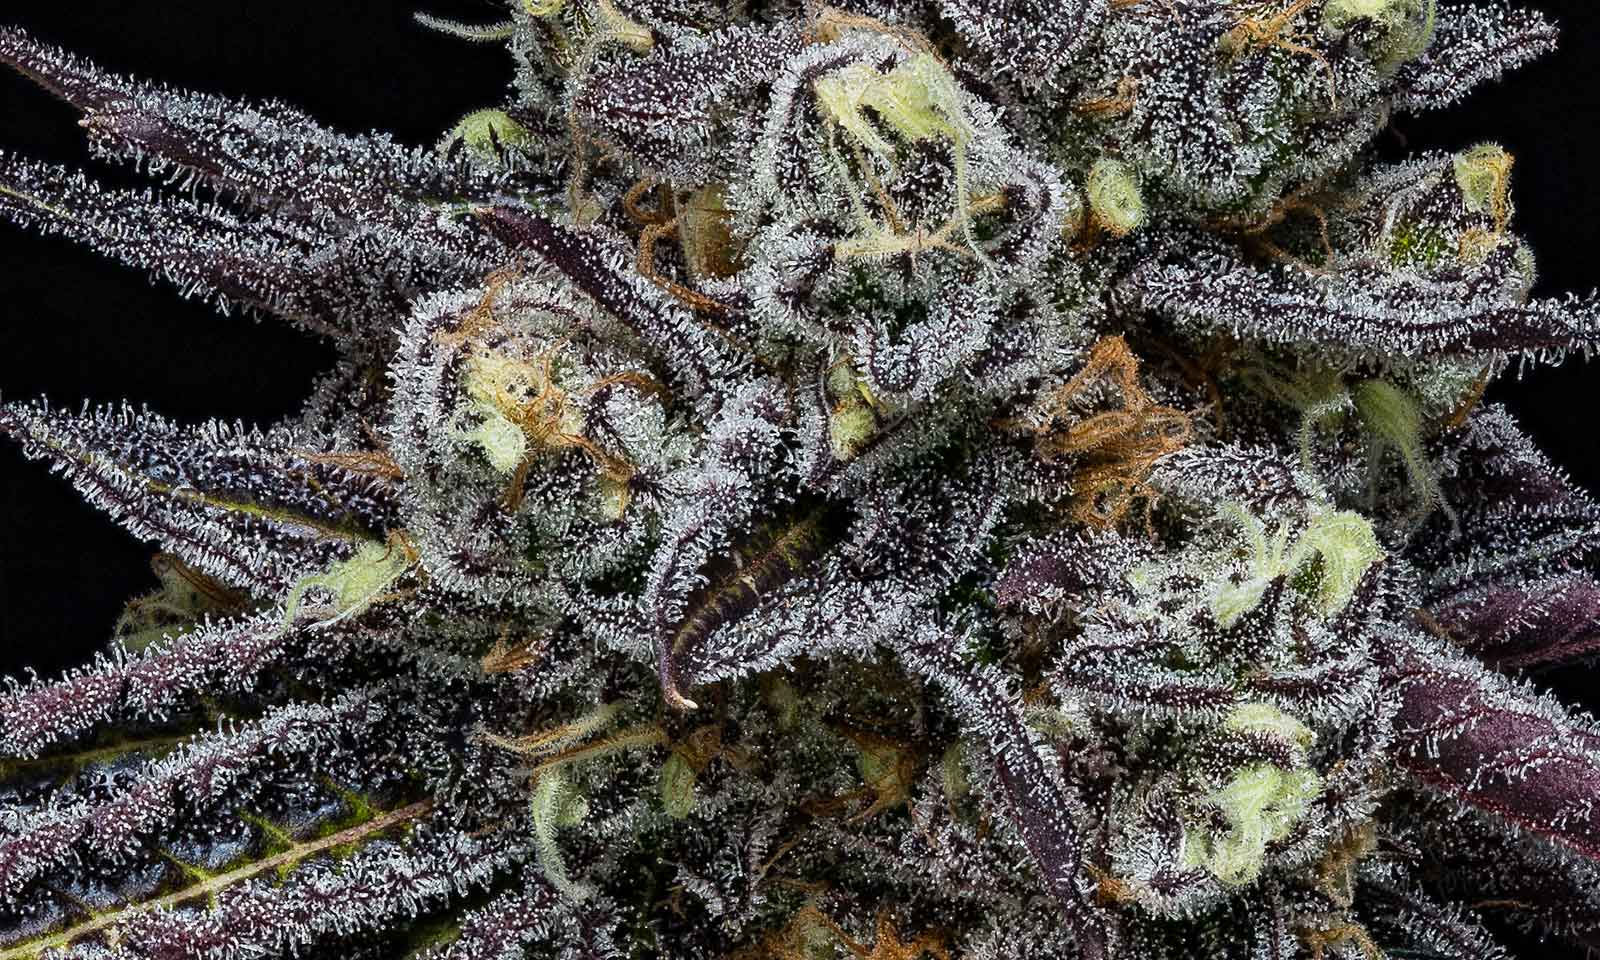 Strain Review: Mendo Breath is a Taste of the Emerald Triangle